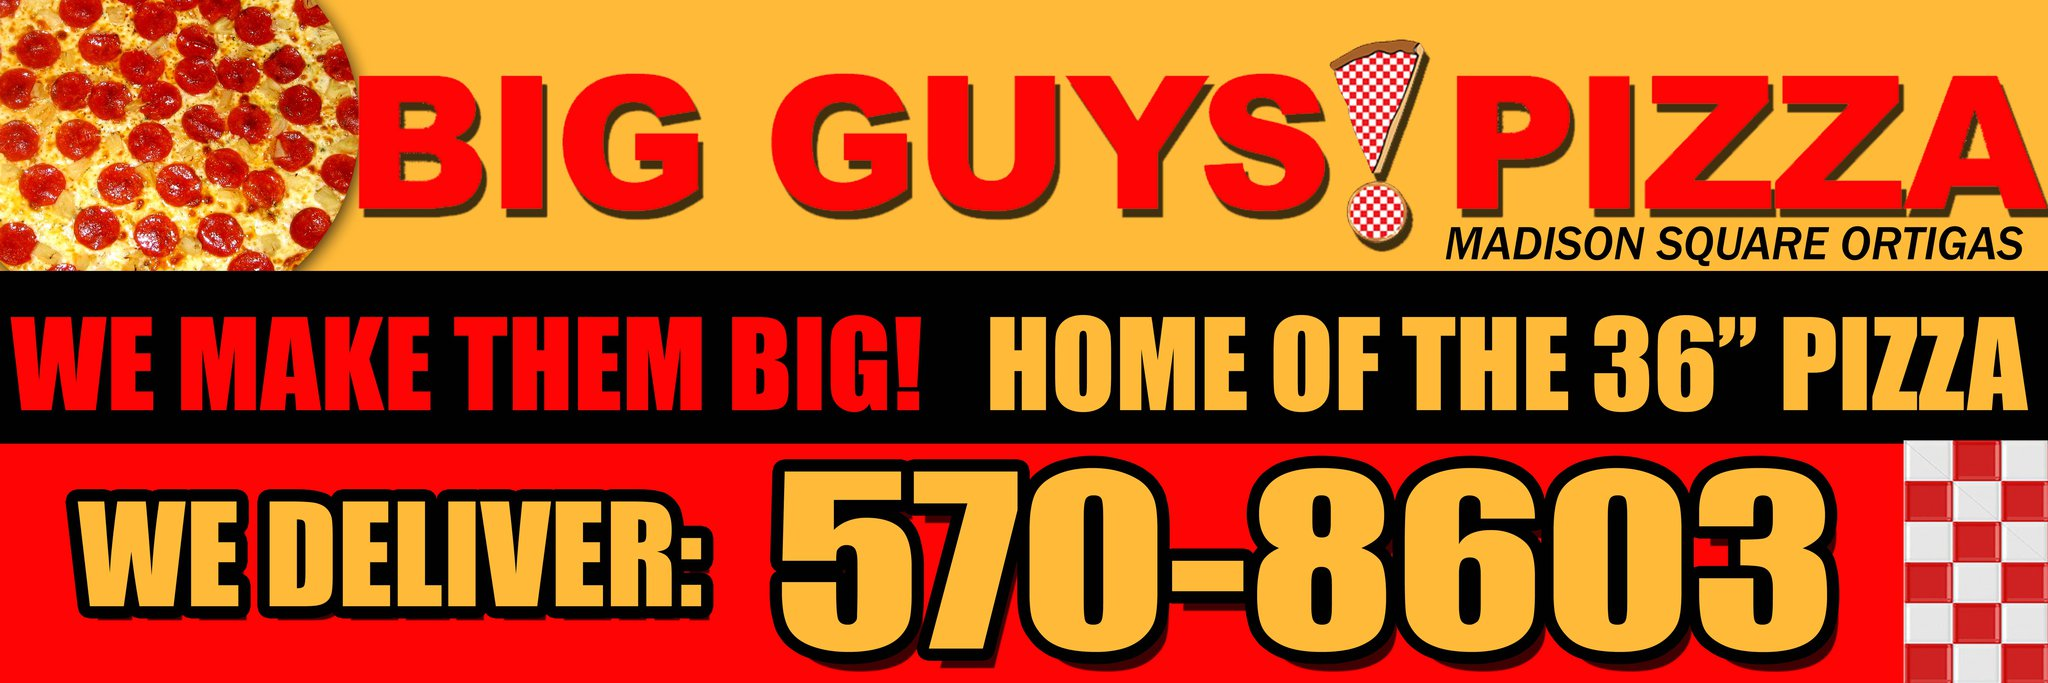 Big guys contact number